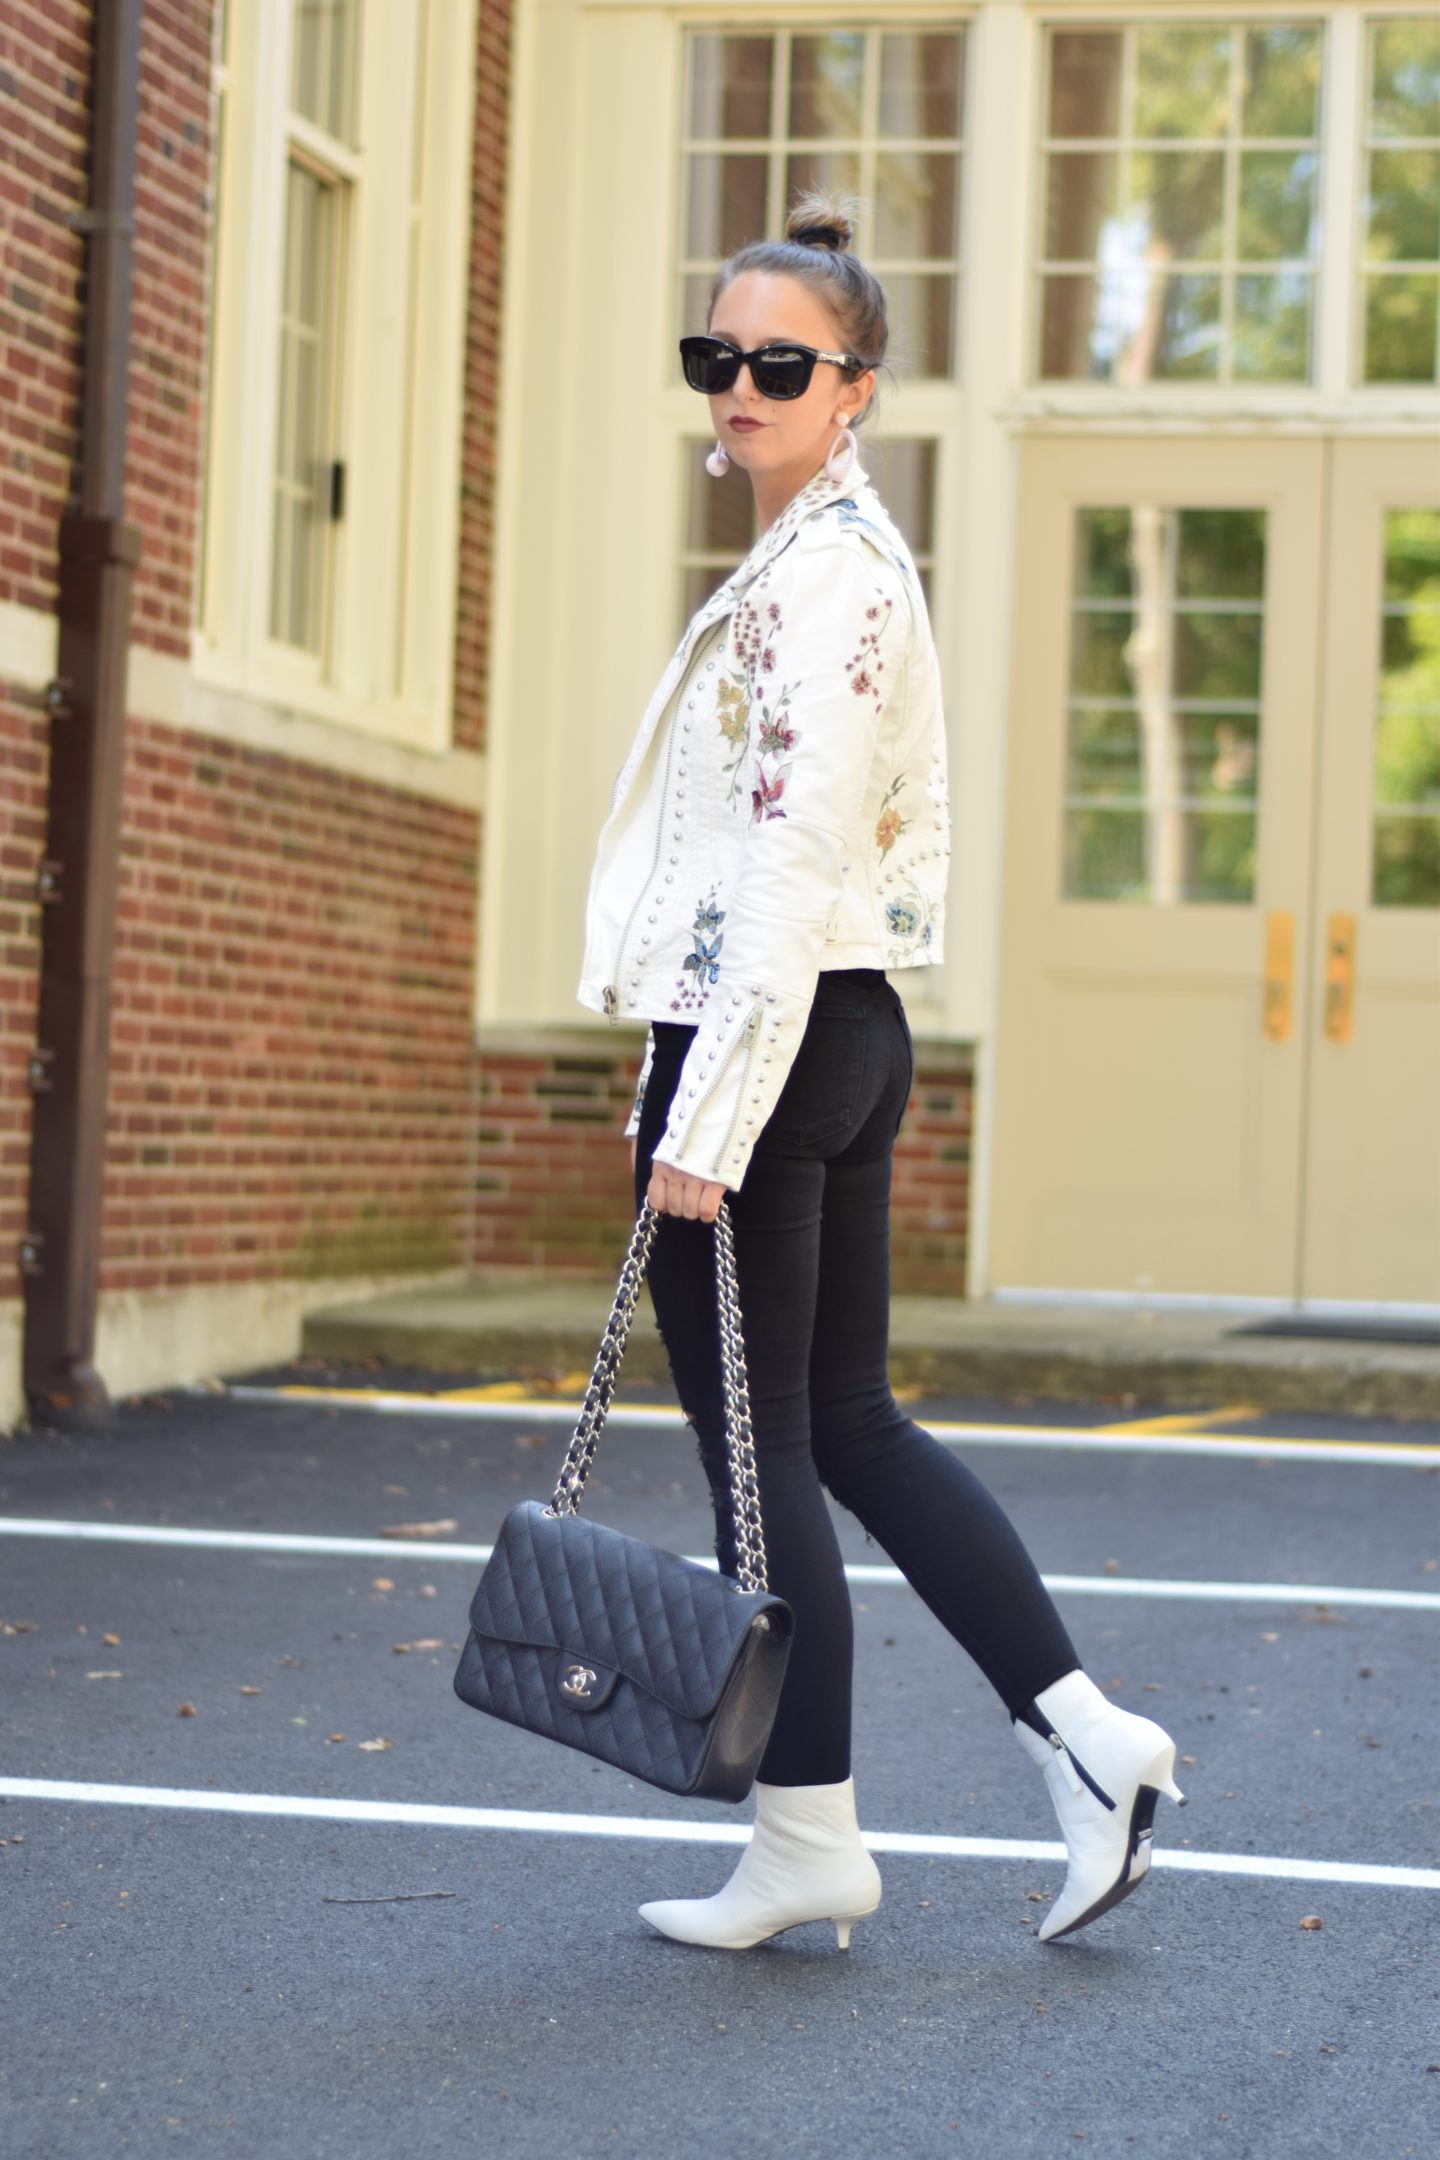 blanknyc-hm-jbrand-street style-outfit